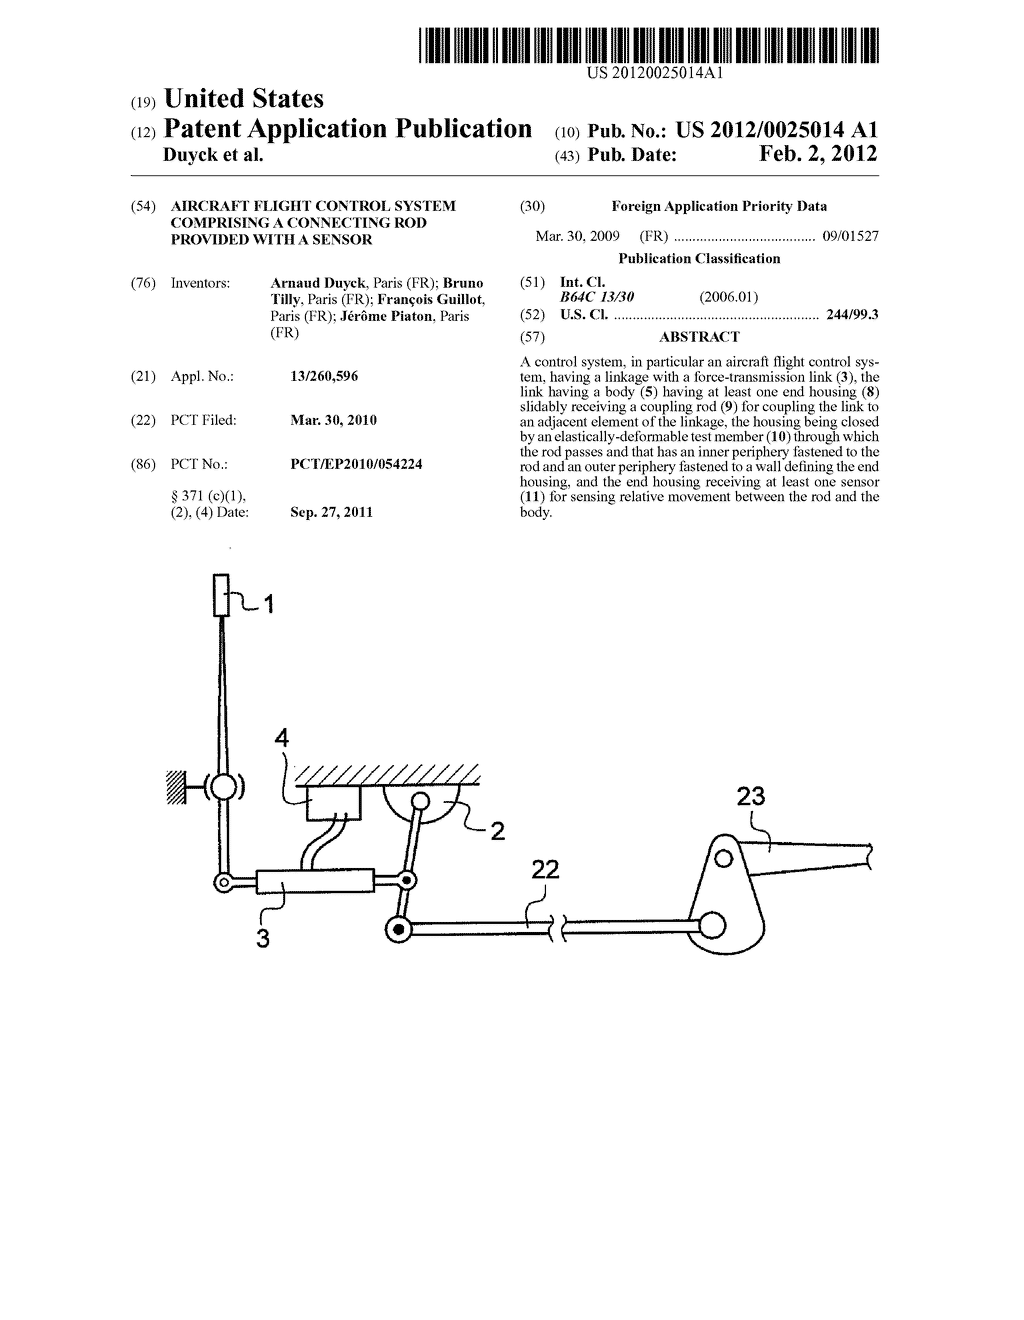 Aircraft Flight Control System Comprising A Connecting Rod Provided Bruno Wiring Diagram With Sensor Schematic And Image 01